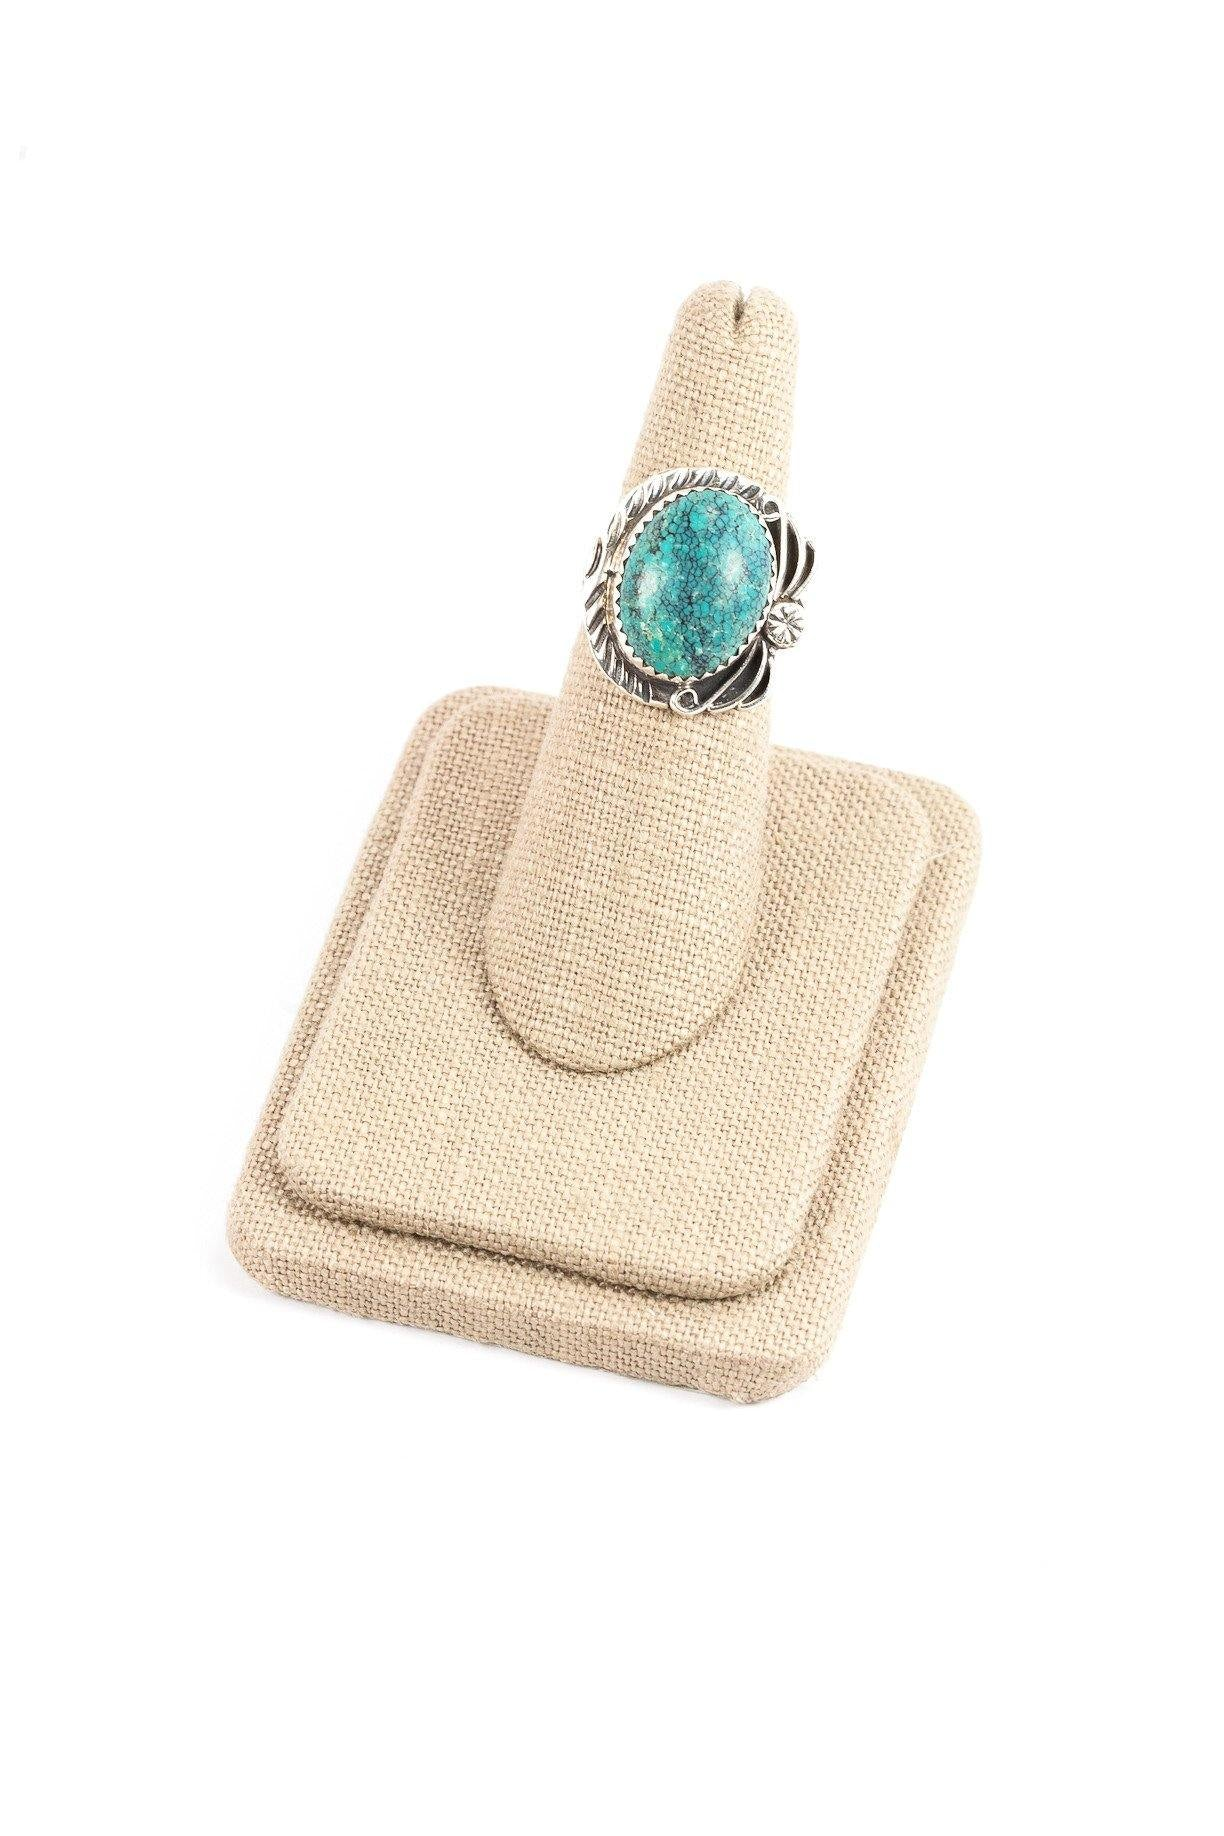 60's__Vintage__Turquoise and Navy Sterling Ring